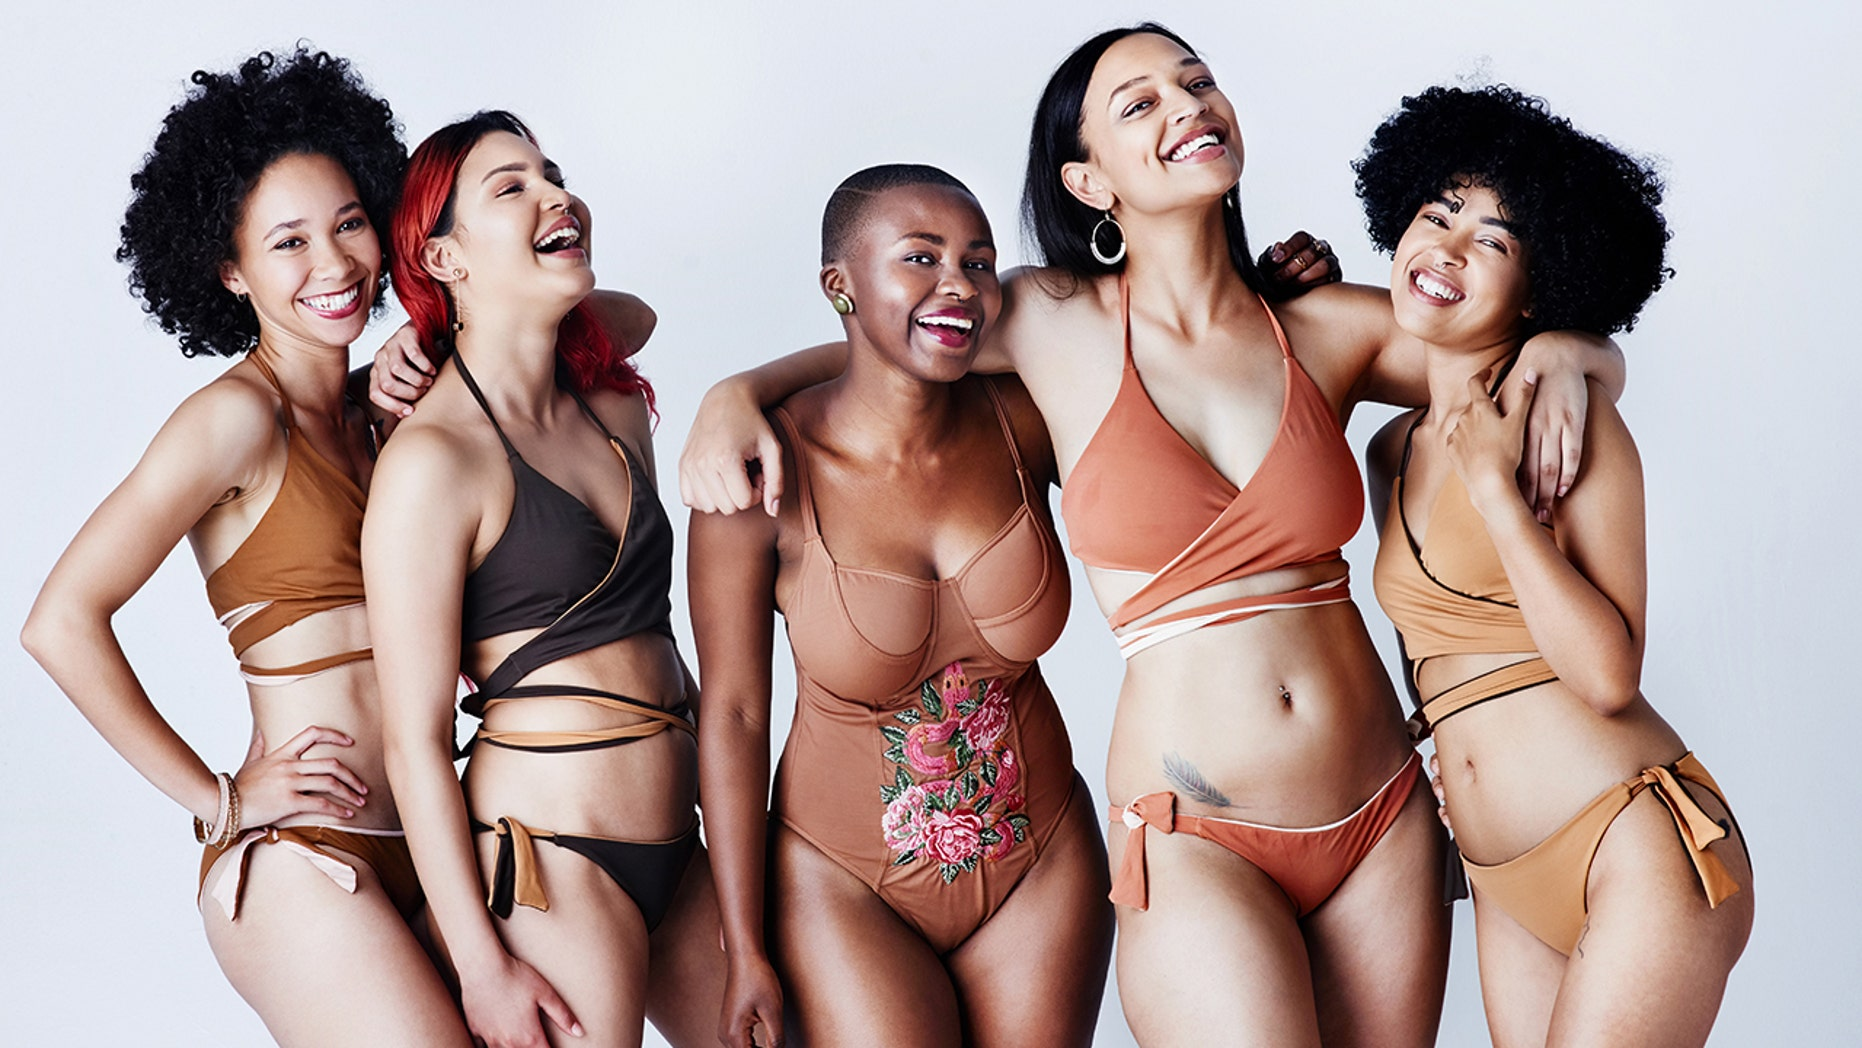 Swim England is under fire for an article suggesting women need to choose certain swimwear based on their body type.